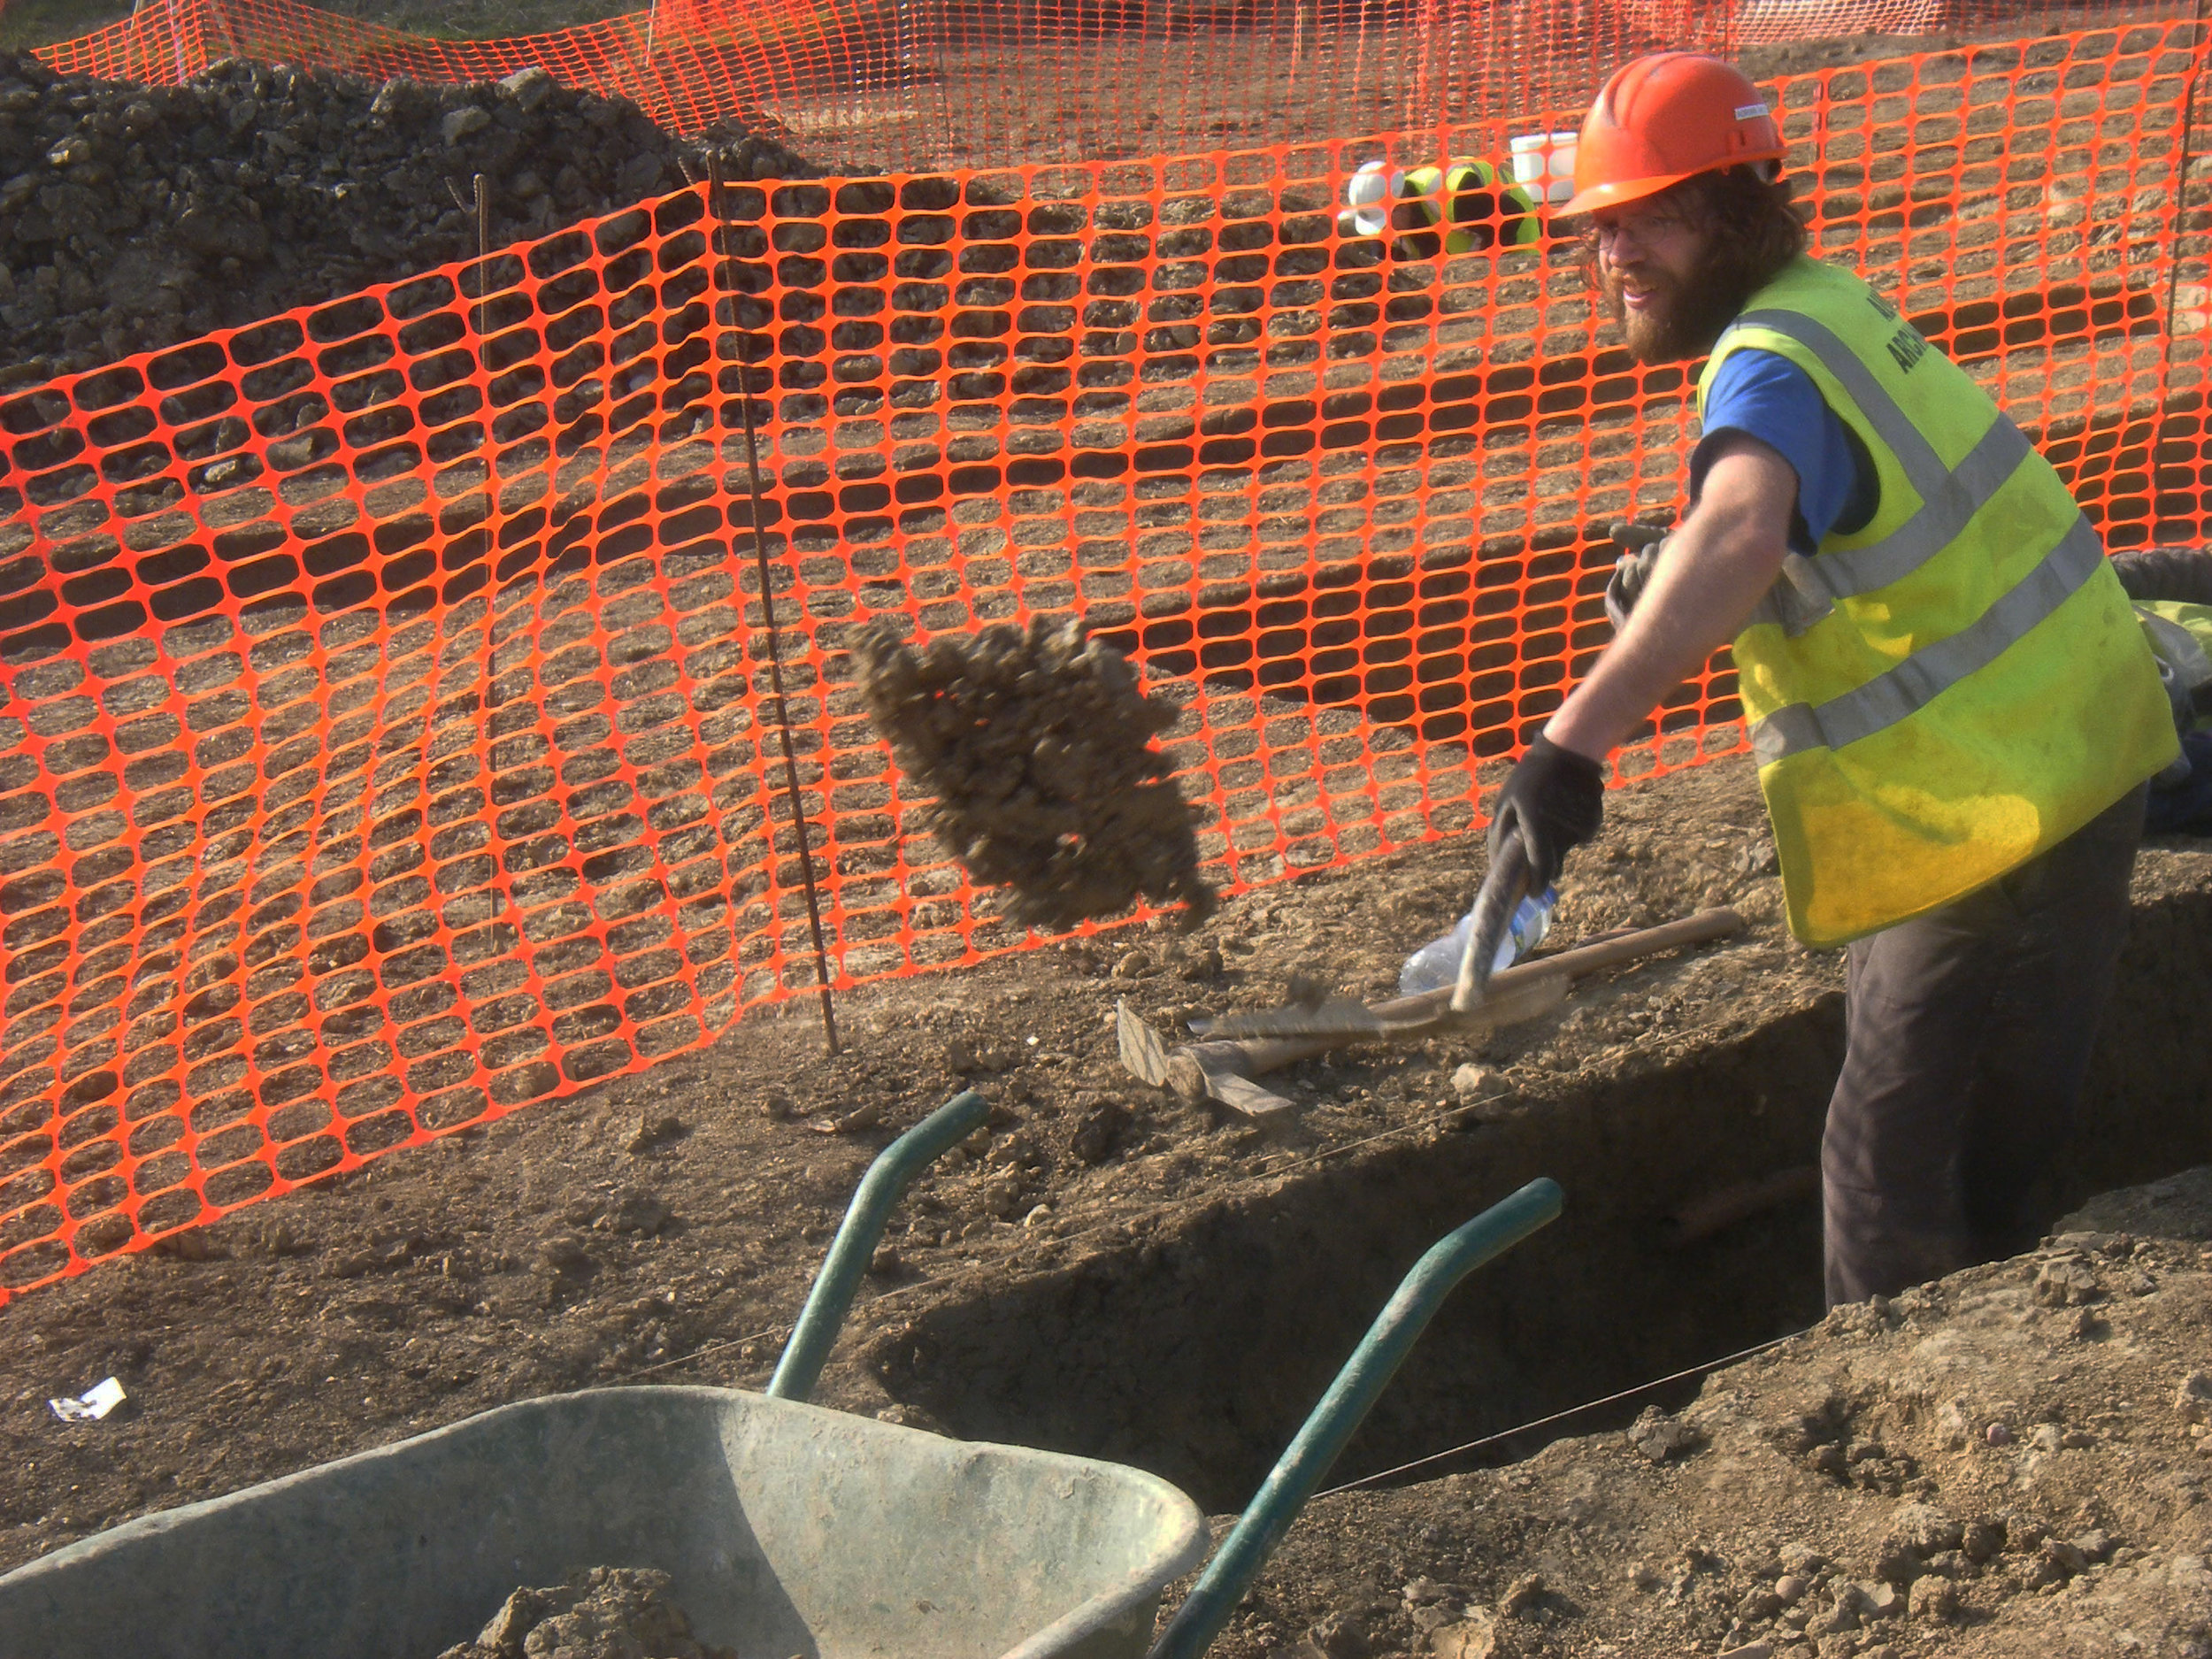 Albion Archaeology team member at work on site